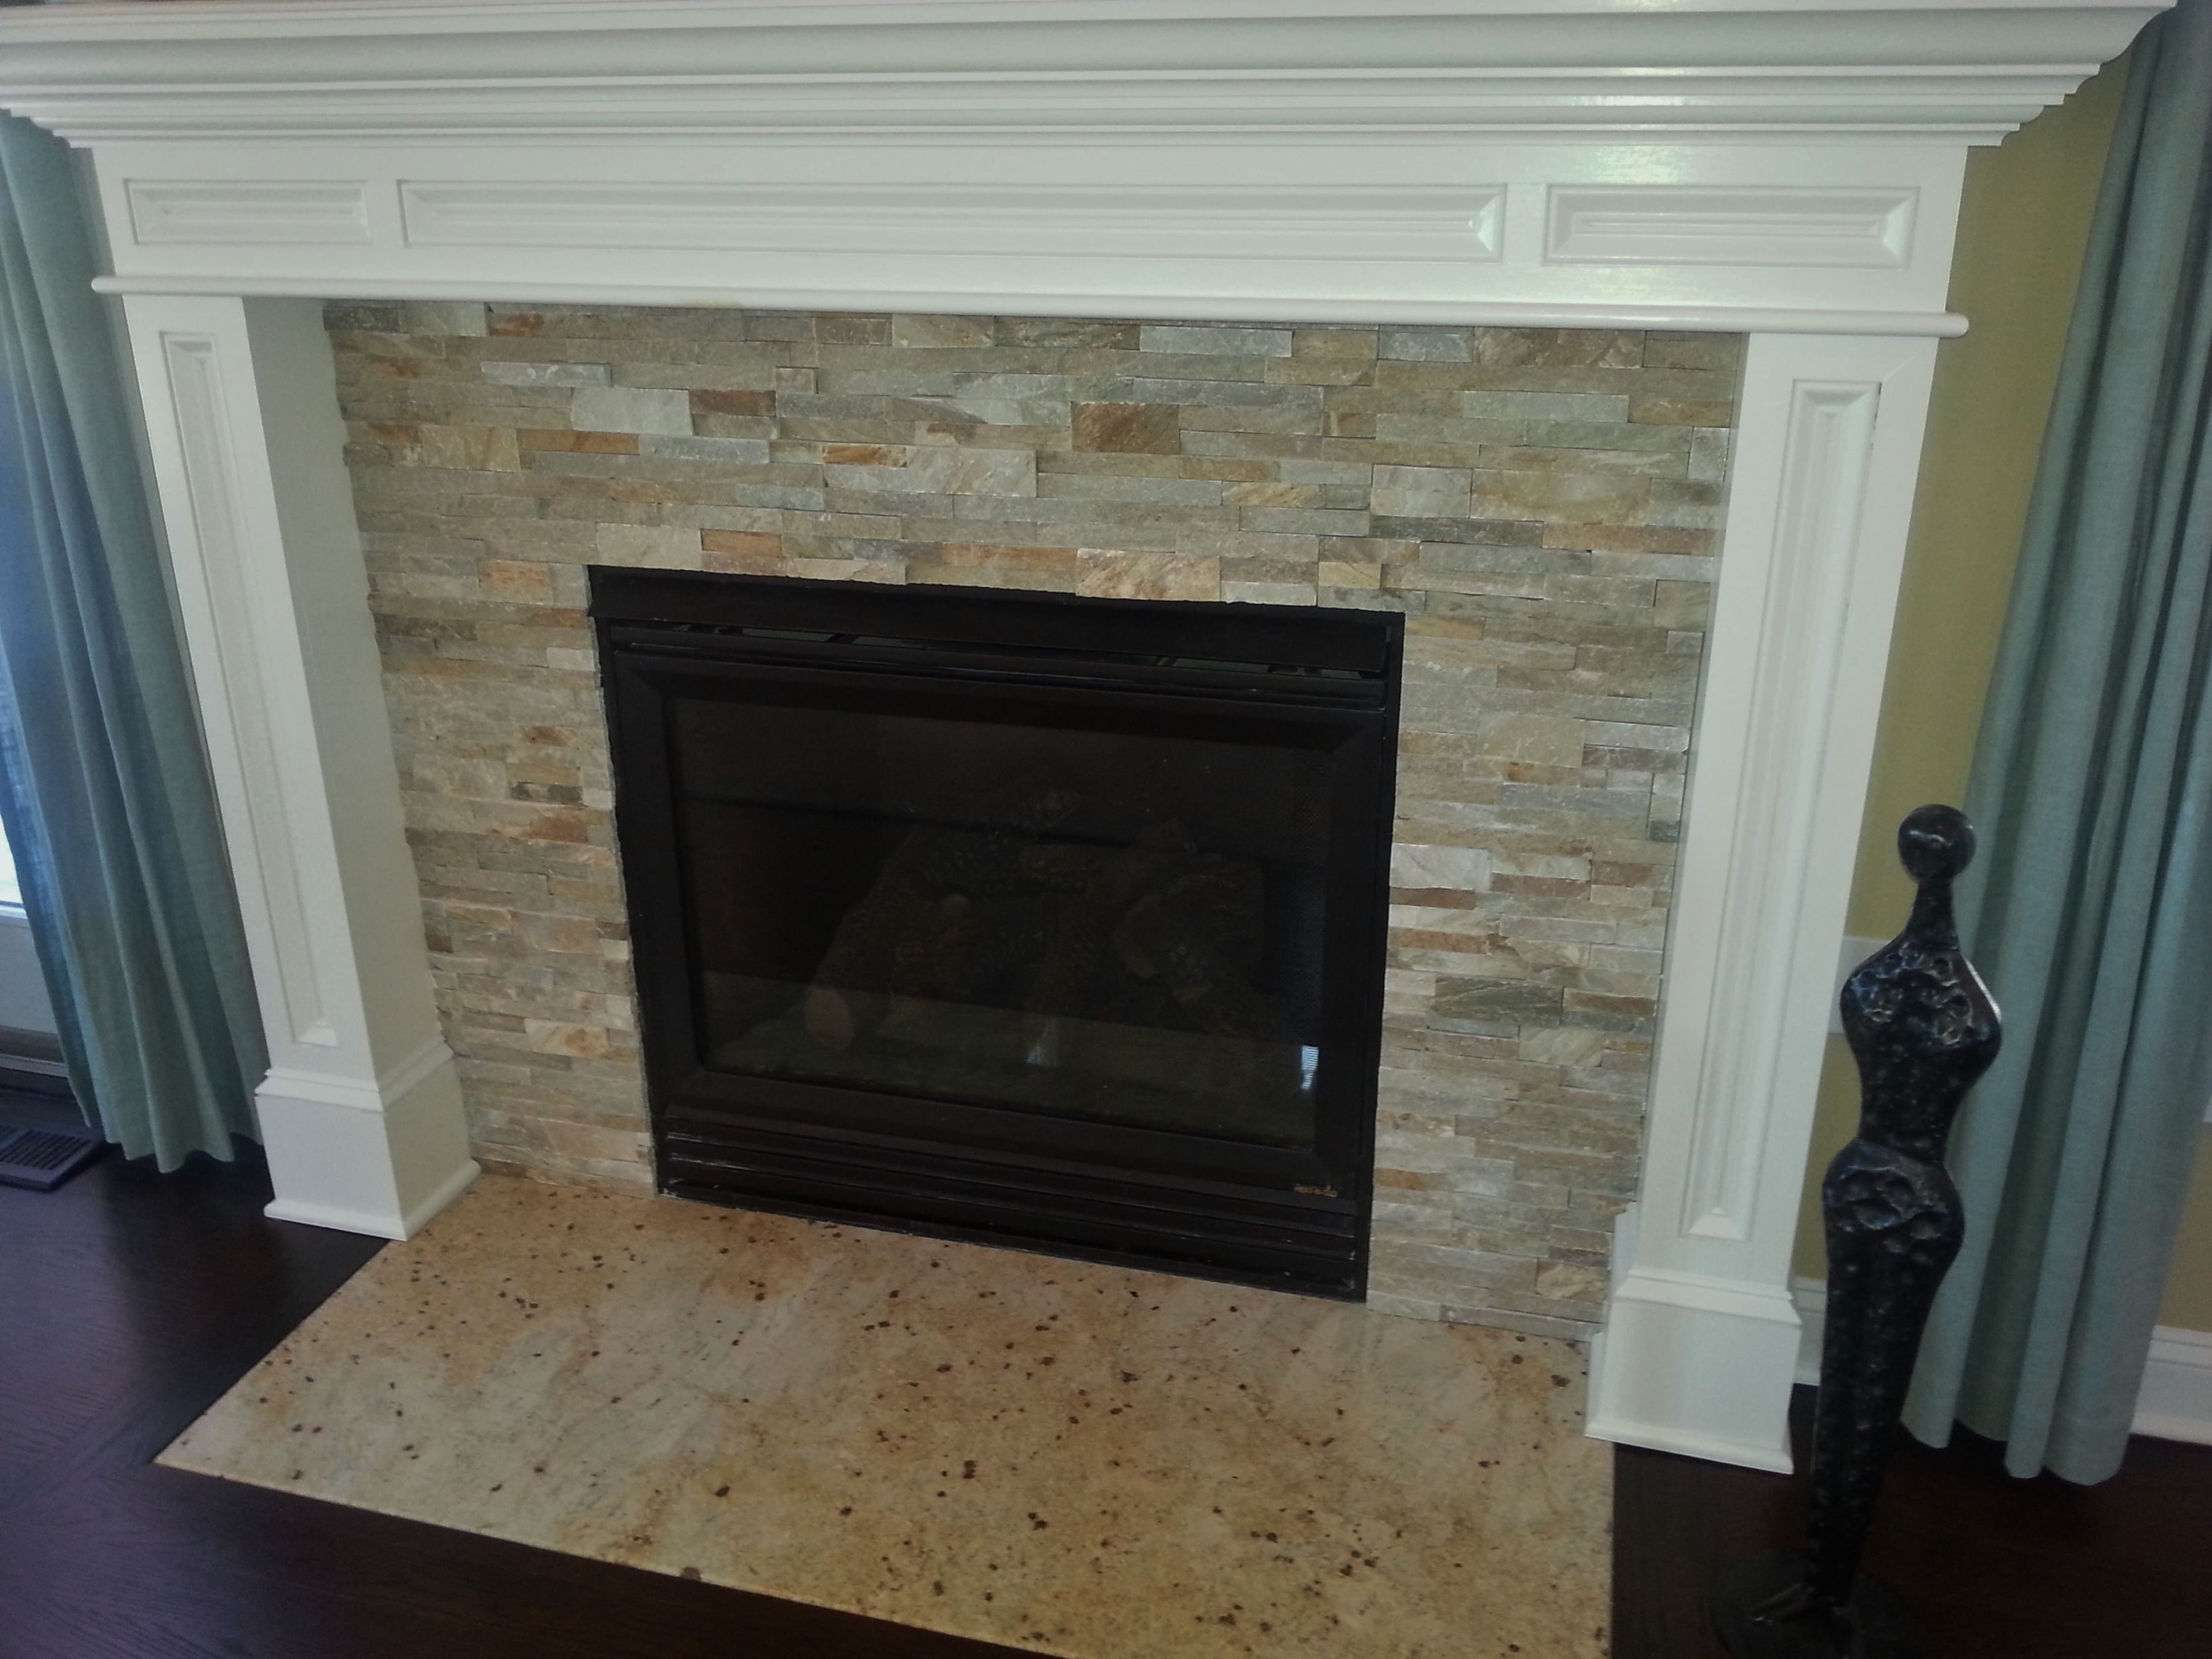 1000+ images about Stacked Stone Fireplace on Pinterest ...